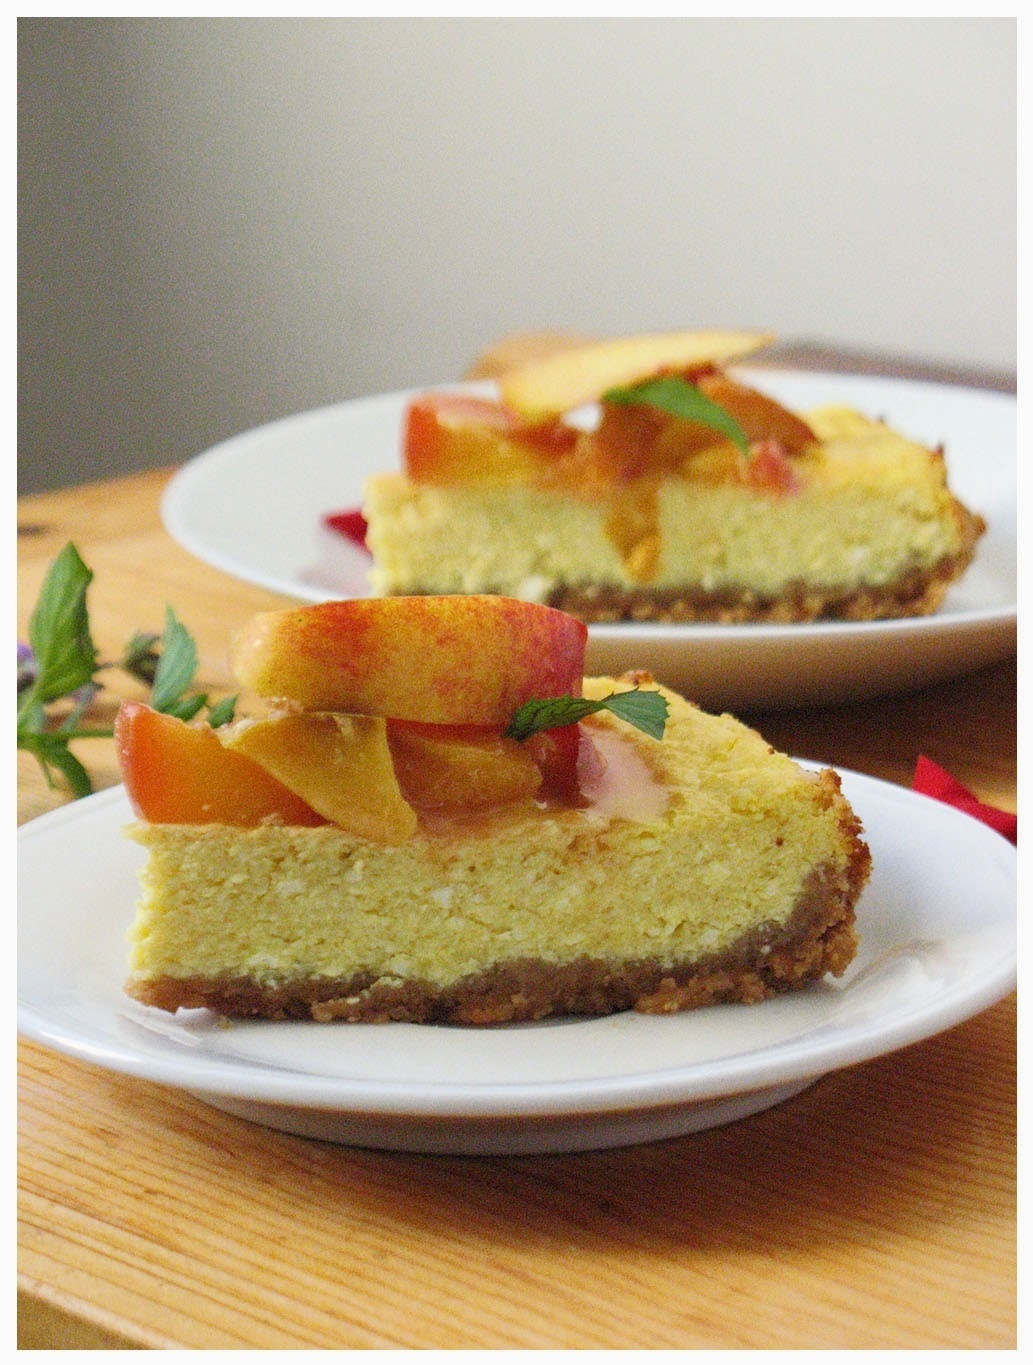 Torta od sira s breskvama/ Cheesecake with peach topping